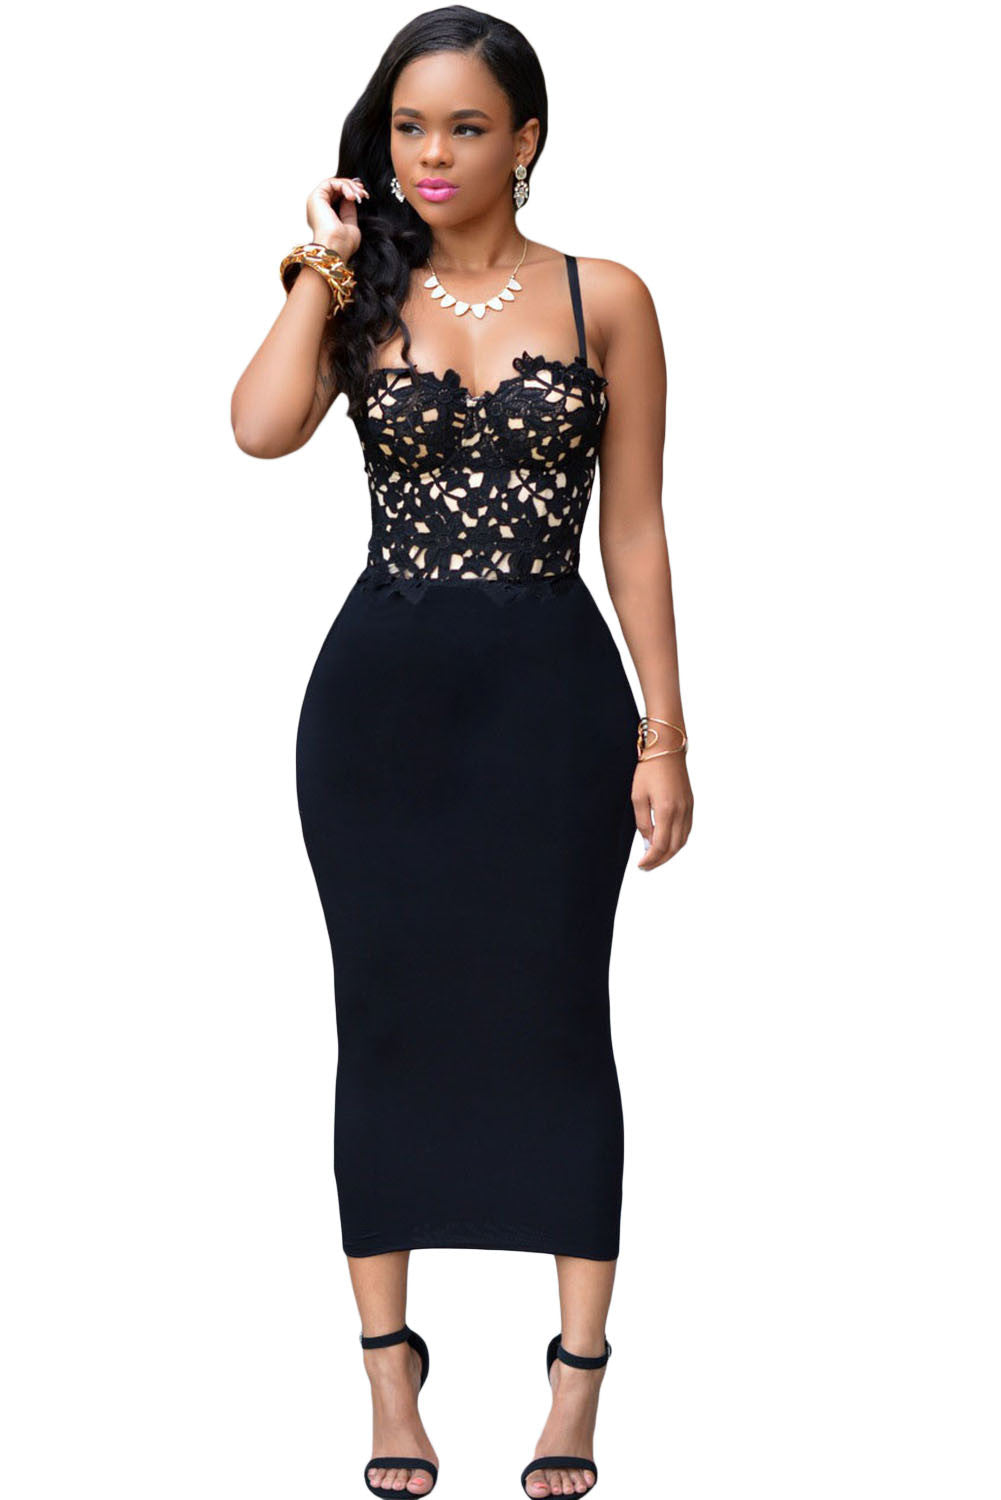 Bustier Lace Top Black Bodycon Sleek Her Fashion Dress